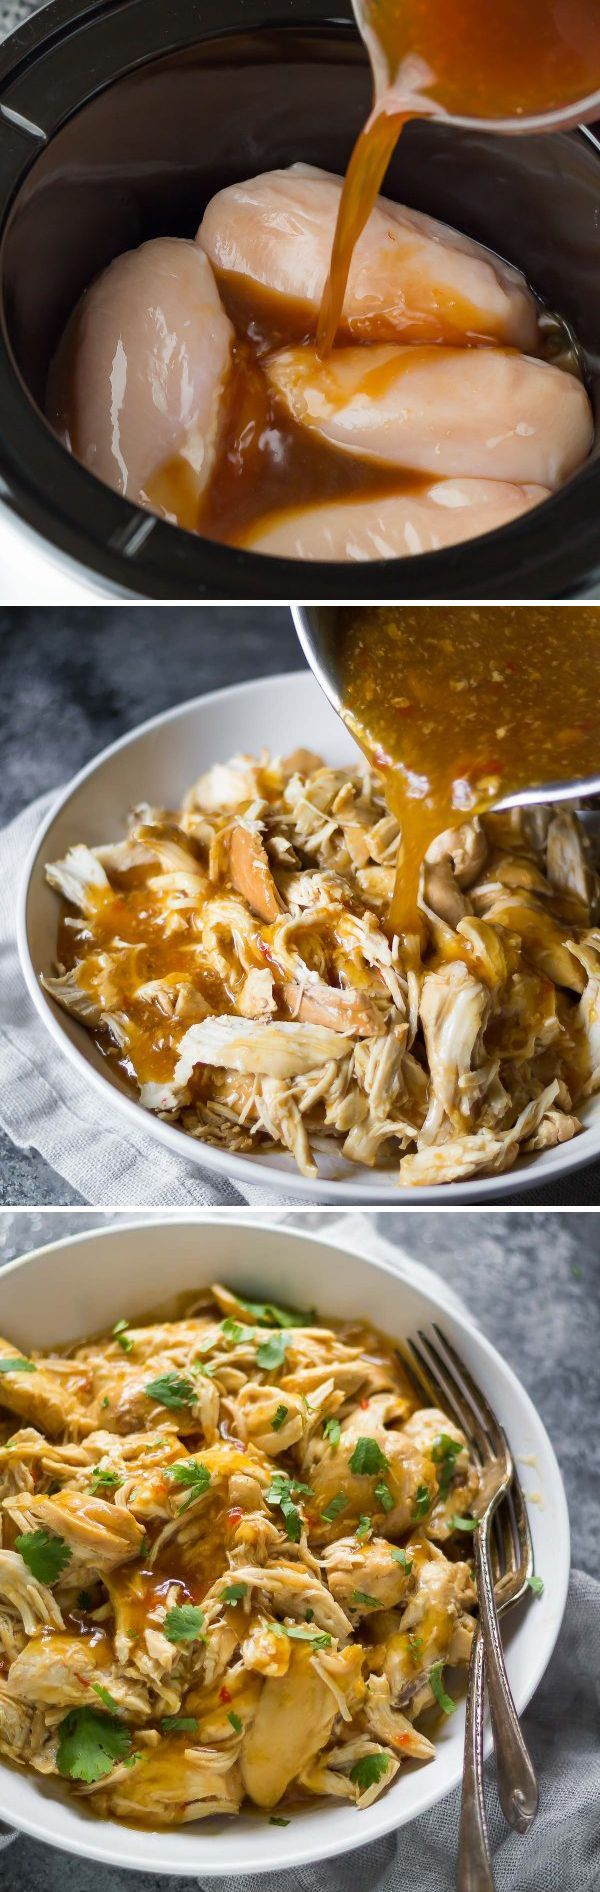 This slow cooker sweet chili chicken requires only 7 ingredients!  Plus 3 recipes